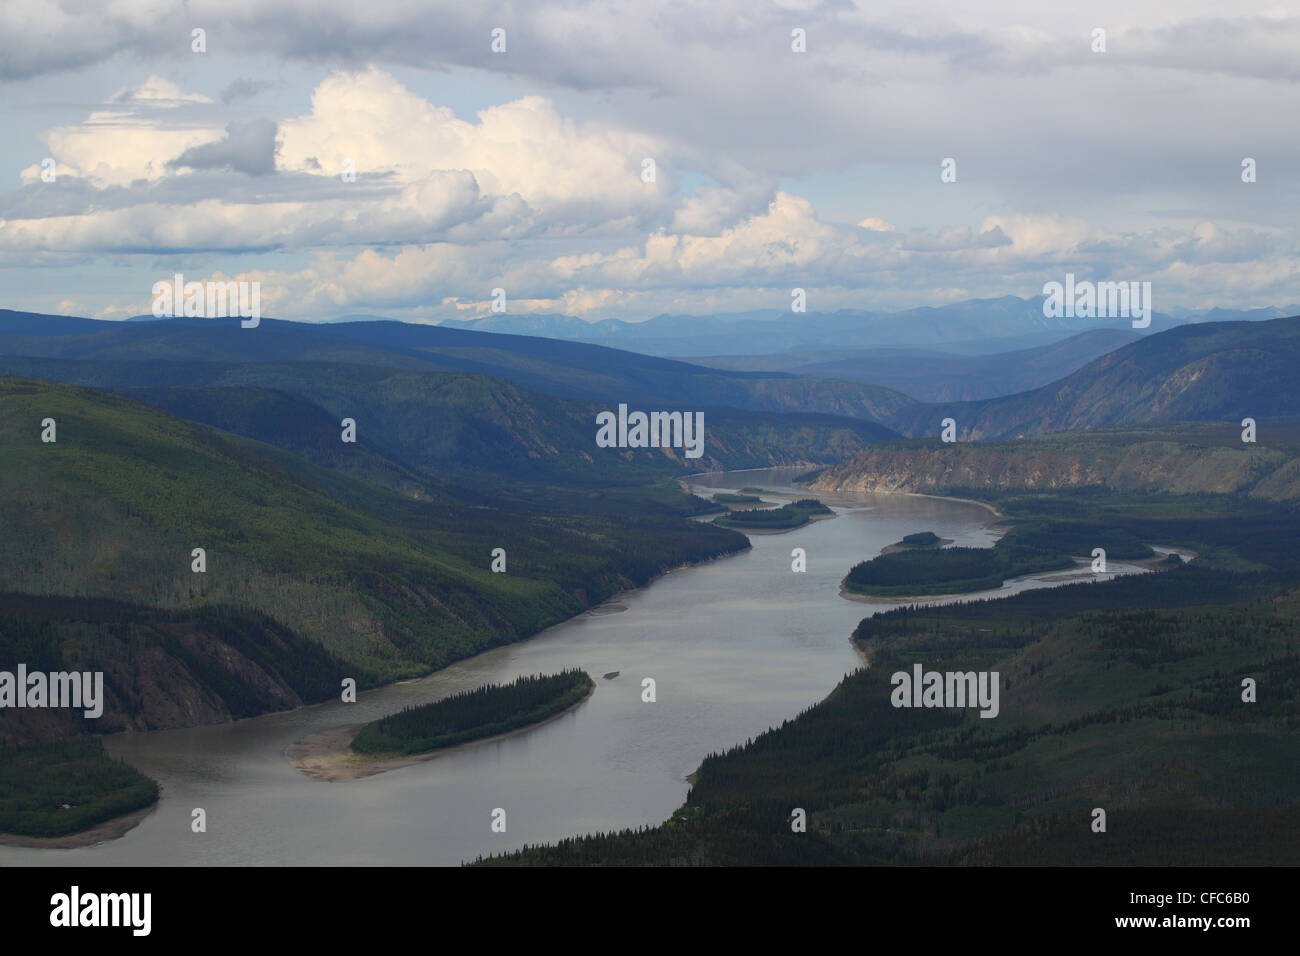 The Yukon River seen from Midnight Dome as it heads north, Dawson City, Yukon, Canada. - Stock Image